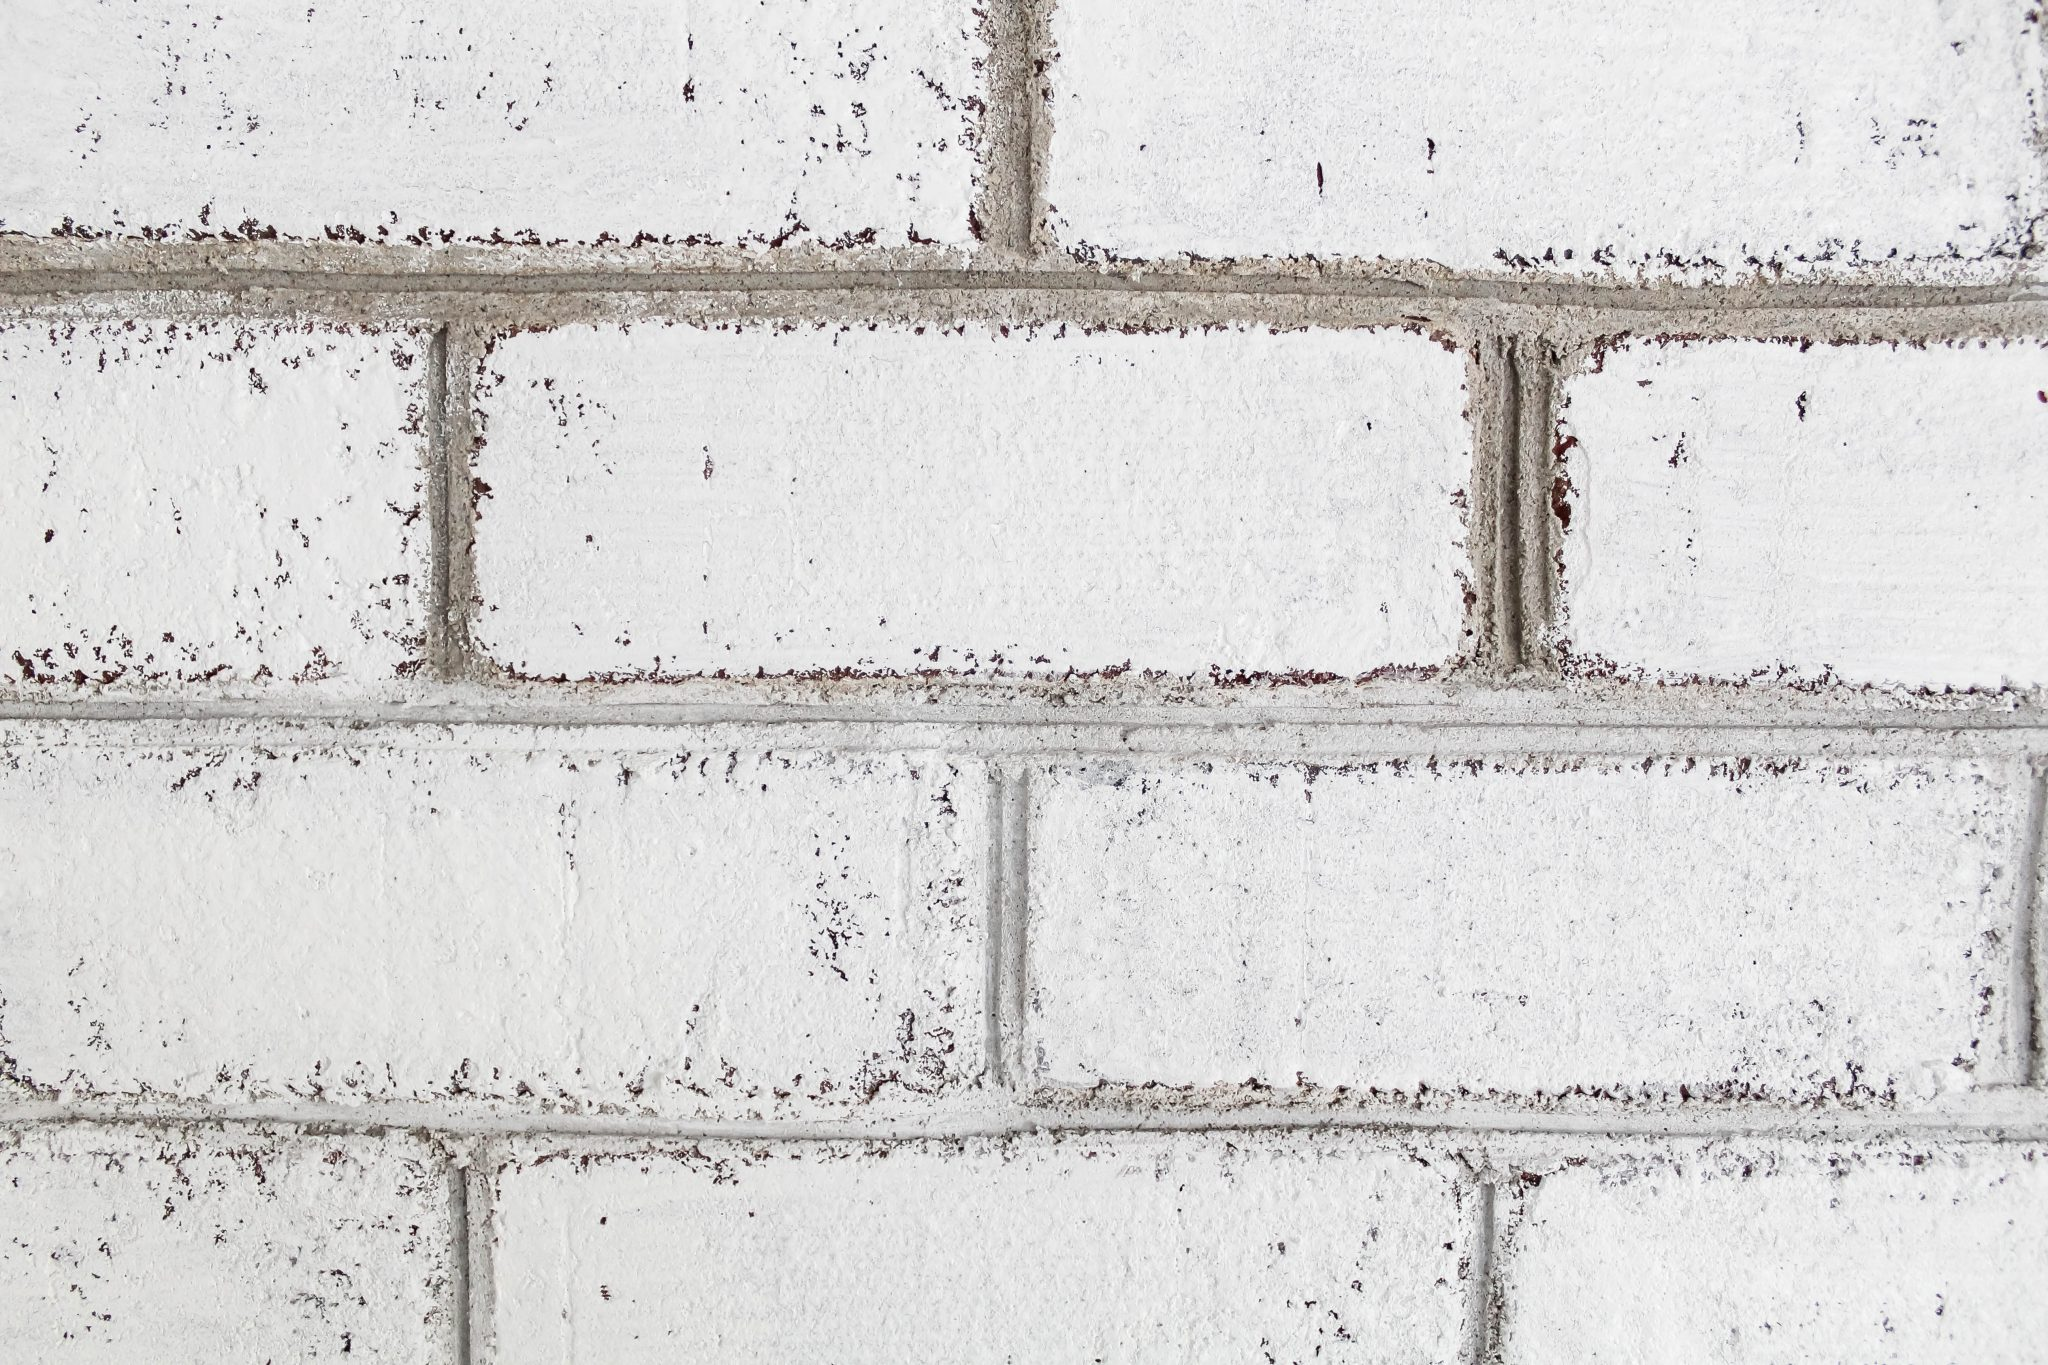 Method: 1/1 grout wash vs. 2/1 grout wash